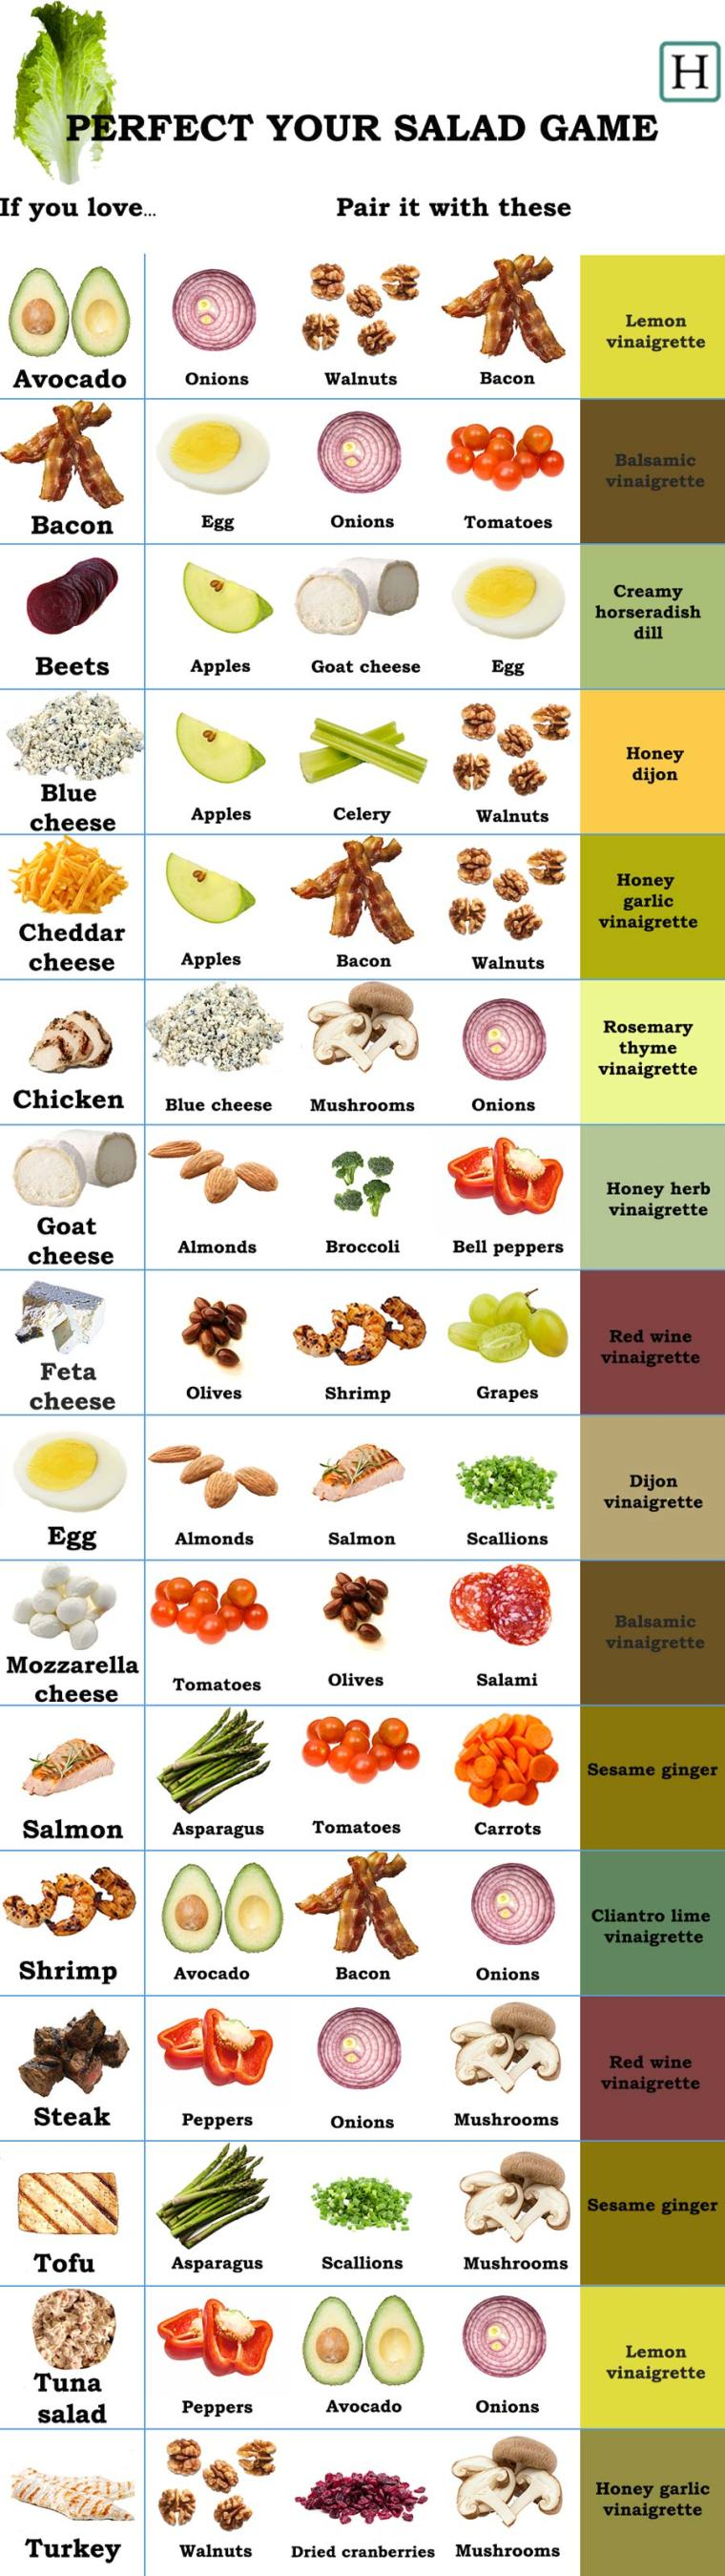 Salad-Guide-Huff